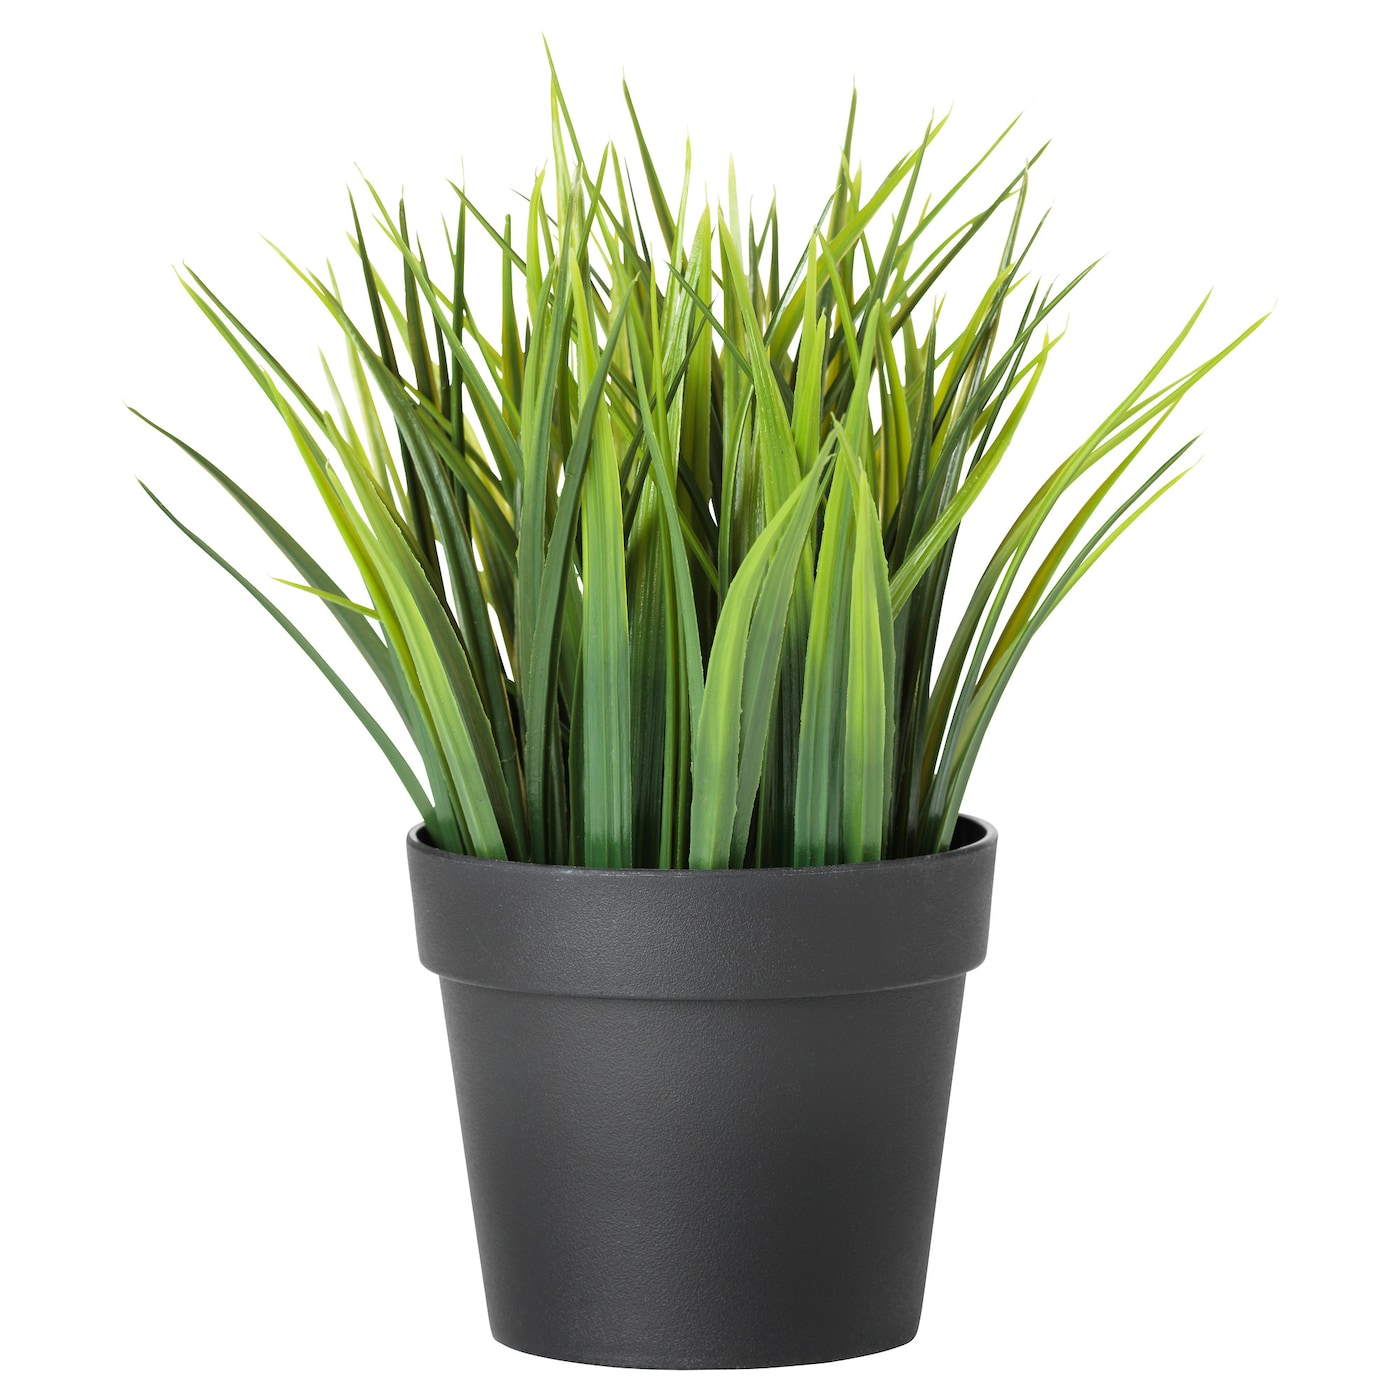 fejka artificial potted plant grass 10 5 cm ikea. Black Bedroom Furniture Sets. Home Design Ideas